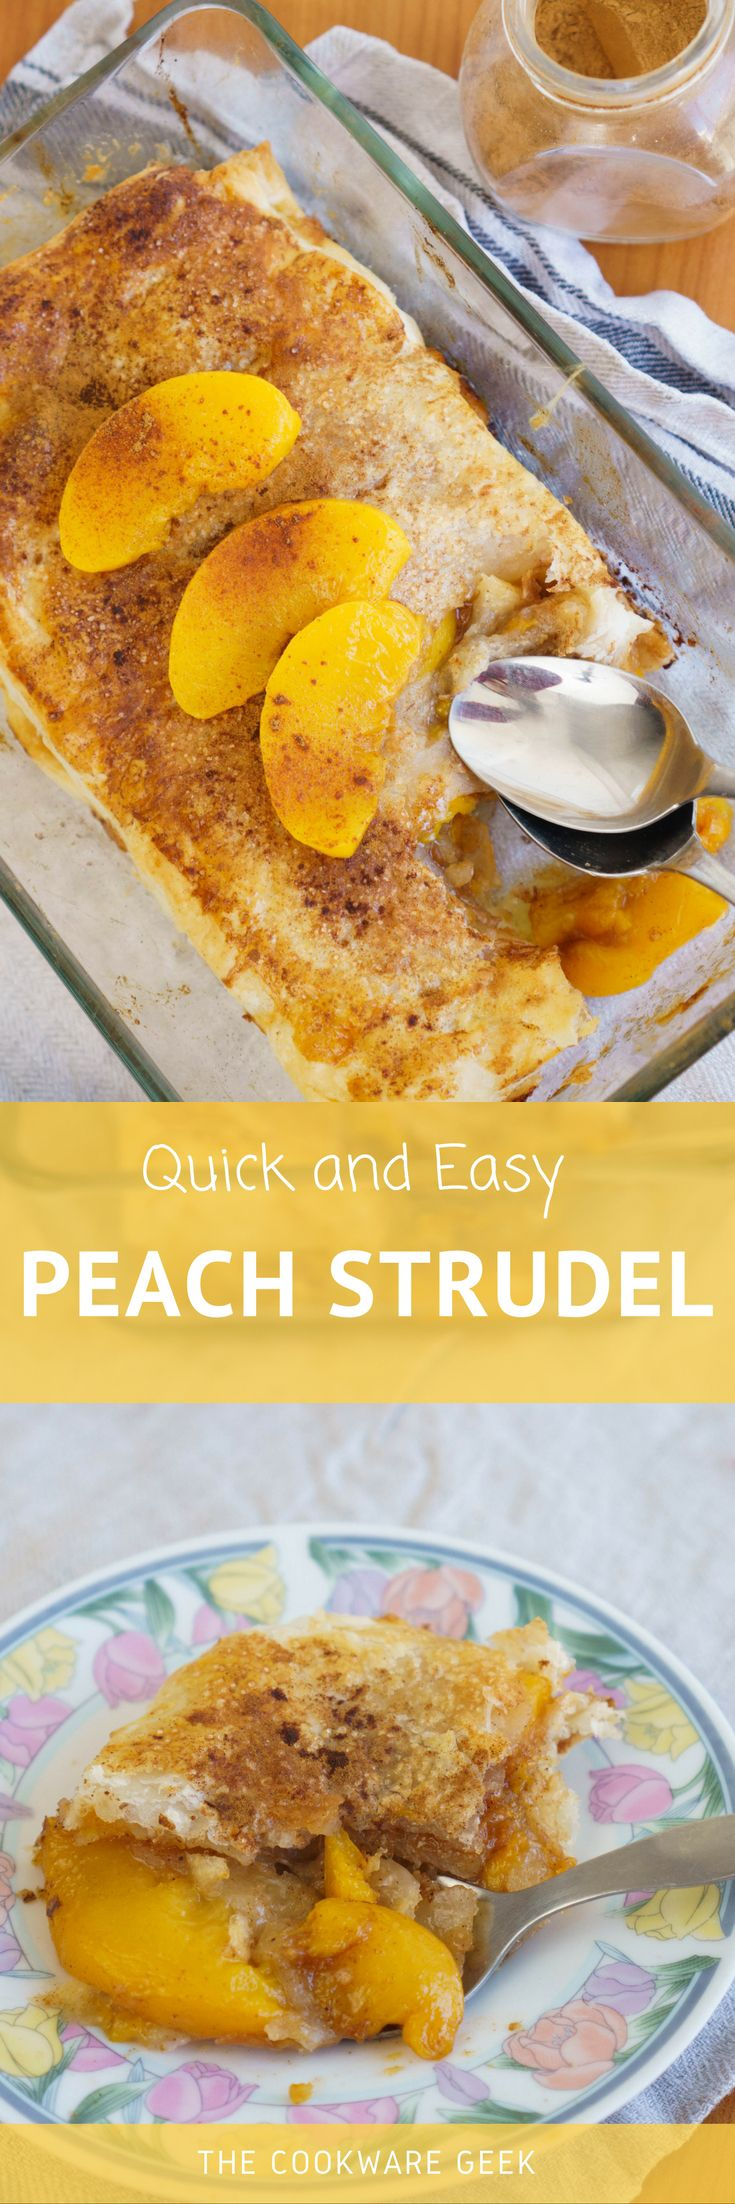 The Easiest Peach Strudel | The Cookware Geek